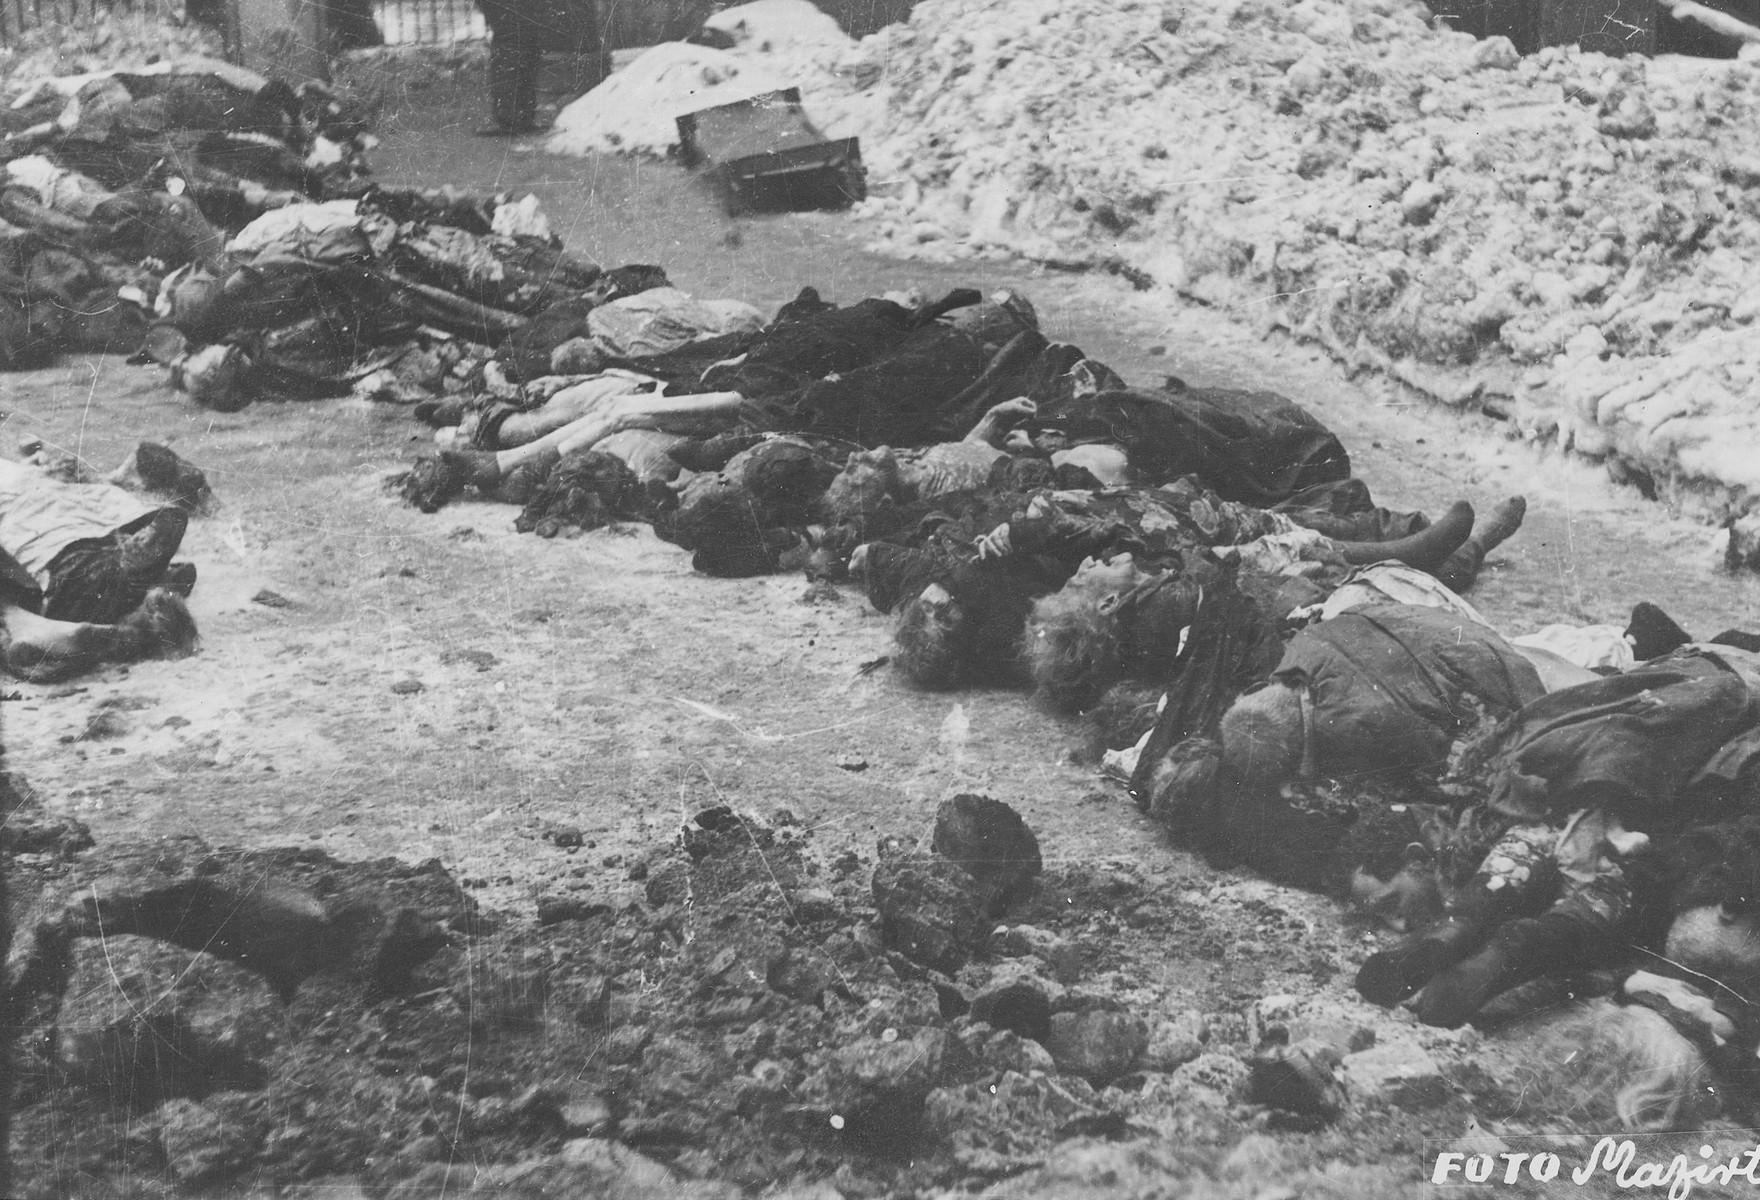 The corpses of Jews lie in the courtyard of the Dohany Street Synagogue.  During the last few months of the war in Hungary, the Nyilas (Arrow Cross) exploited the anarchic conditions in the areas still under their control to continue their excesses against the Jews.  This was particularly true in Budapest, despite the fact that the Soviet army had completely encircled the city by December 27, 1944.  The reign of terror that had begun with Szalaszi's assumption of power on October 15, 1944, went almost completely unchecked after the beginning of the Soviet siege on December 9.  Gangs of armed Nyilas--mostly teenagers--roamed the city hunting for Jews in hiding.  They searched them out in hospitals, shelters, homes outside the ghetto, in the International Ghetto, and in the large ghetto.  After robbing the Jews of their remaining valuables, the Nyilas shot them on the spot or marched them to the banks of the Danube, where they shot them, and threw their bodies into the river.  A large number of Jews who were murdered in the ghetto were buried in mass graves in the courtyard of the Dohany Street Synagogue.  The most horrific of these attacks occurred on the Pest side of the capital, at the two Jewish hospitals located on Maros and Varosmajor streets.  The Maros Street hospital, which had operated under the protection of the International Red Cross during the German occupation, was attacked on January 11, 1945.  After the initial melee, during which Nyilas gang members wantonly destroyed hospital equipment, threw patients out of their beds and trampled them, and murdered staff members, survivors were ordered to dig a mass grave, remove and bury the bodies.  They were then shot and buried in the grave themselves.  Only one nurse survived of the 92 people that were in the hospital at the time.  Three days later, on January 14, the hospital on Varosmajor Street was attacked, resulting in the deaths of 150 patients and medical staff.  These manhunts and massacres continued 